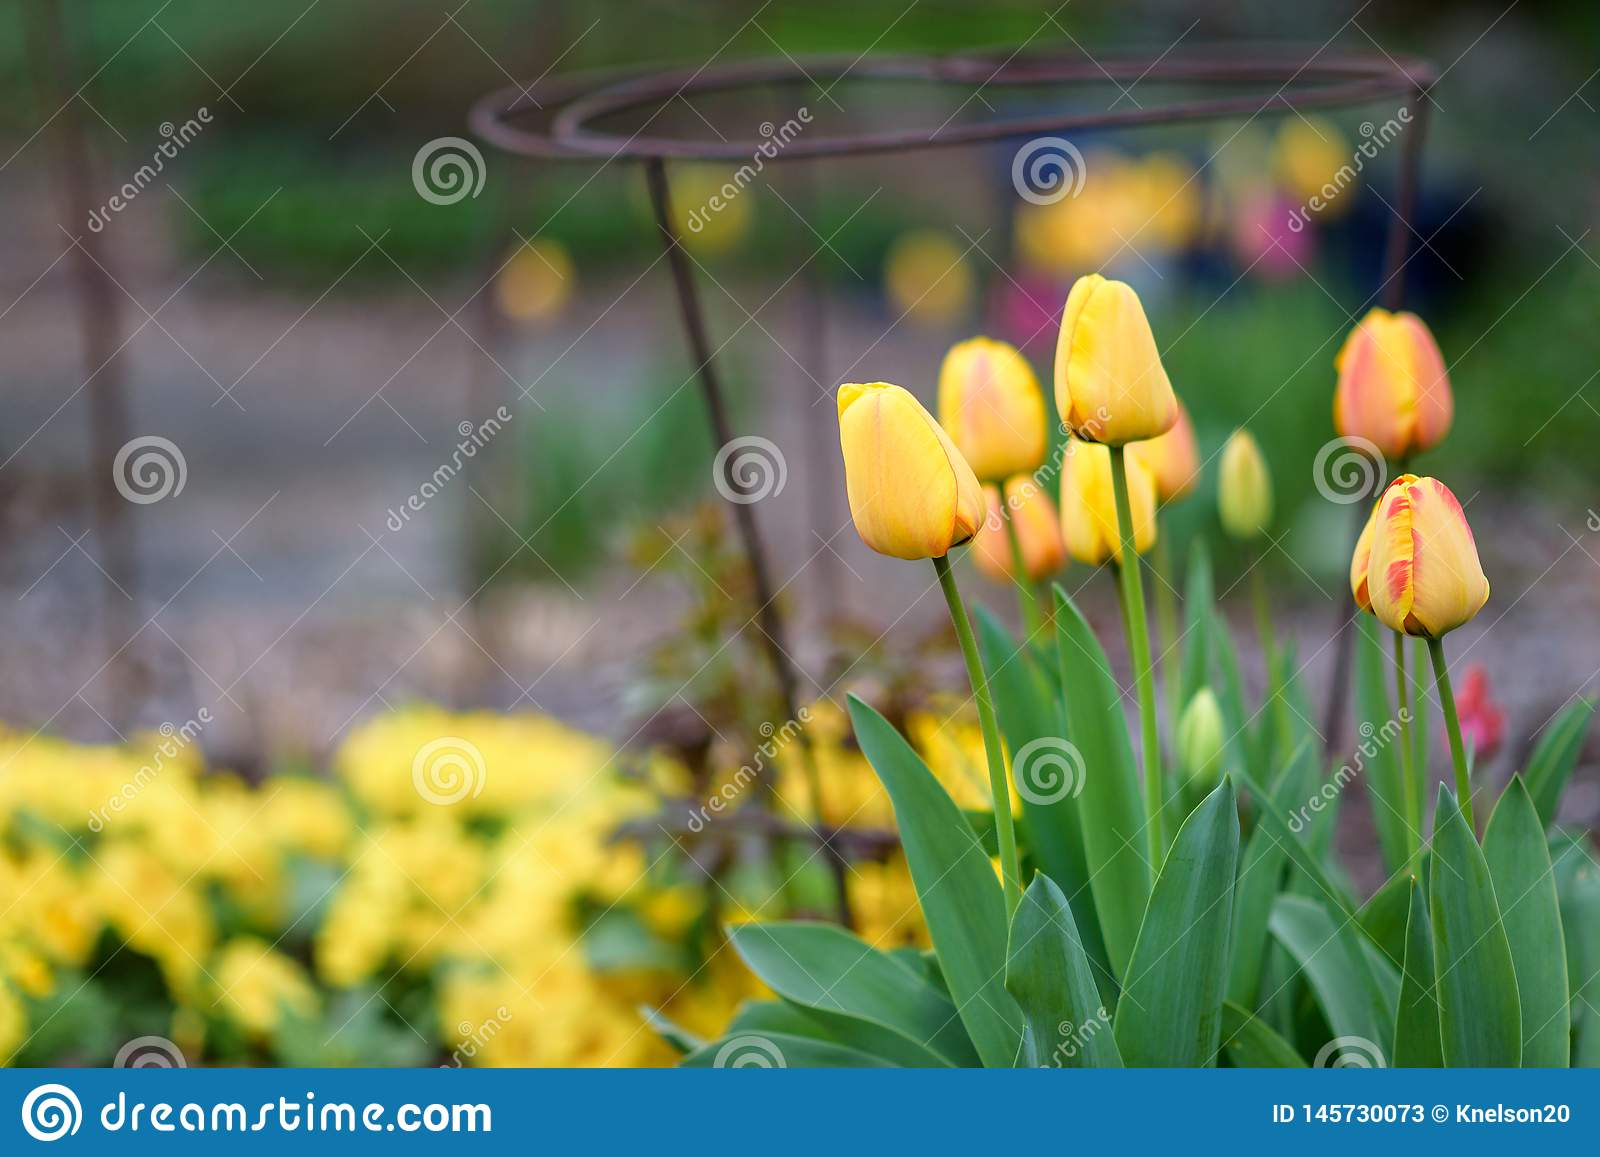 Spring flowers growing in a home garden, yellow and red tulips, metal plant supports and other plants in the background, springtim